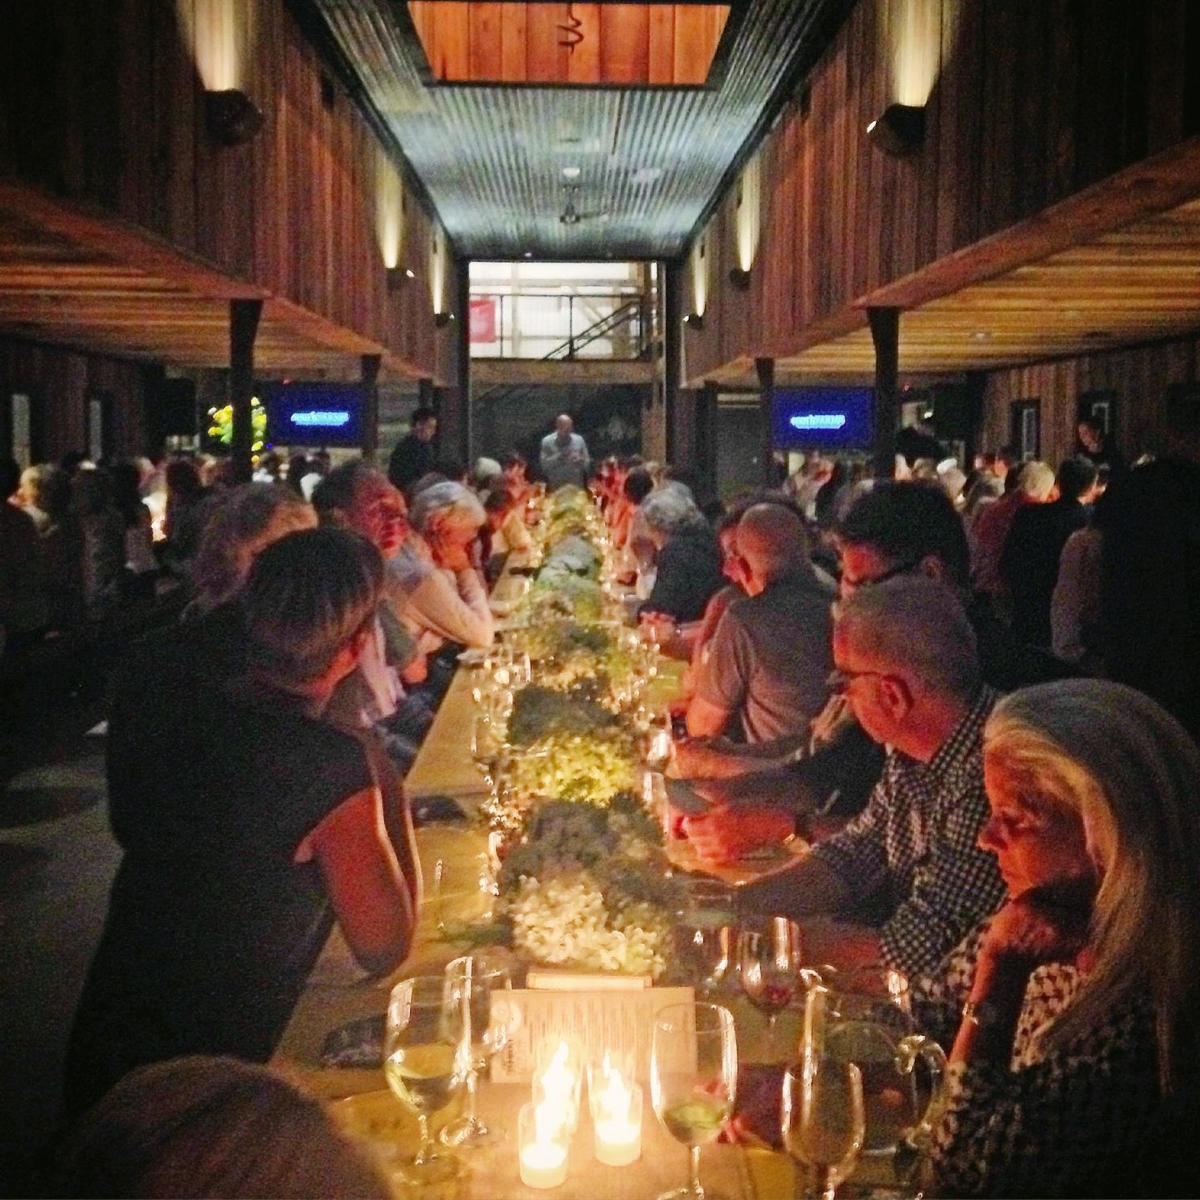 Farmer's Table event supports agriculture in Litchfield County with education, funds, alternatives